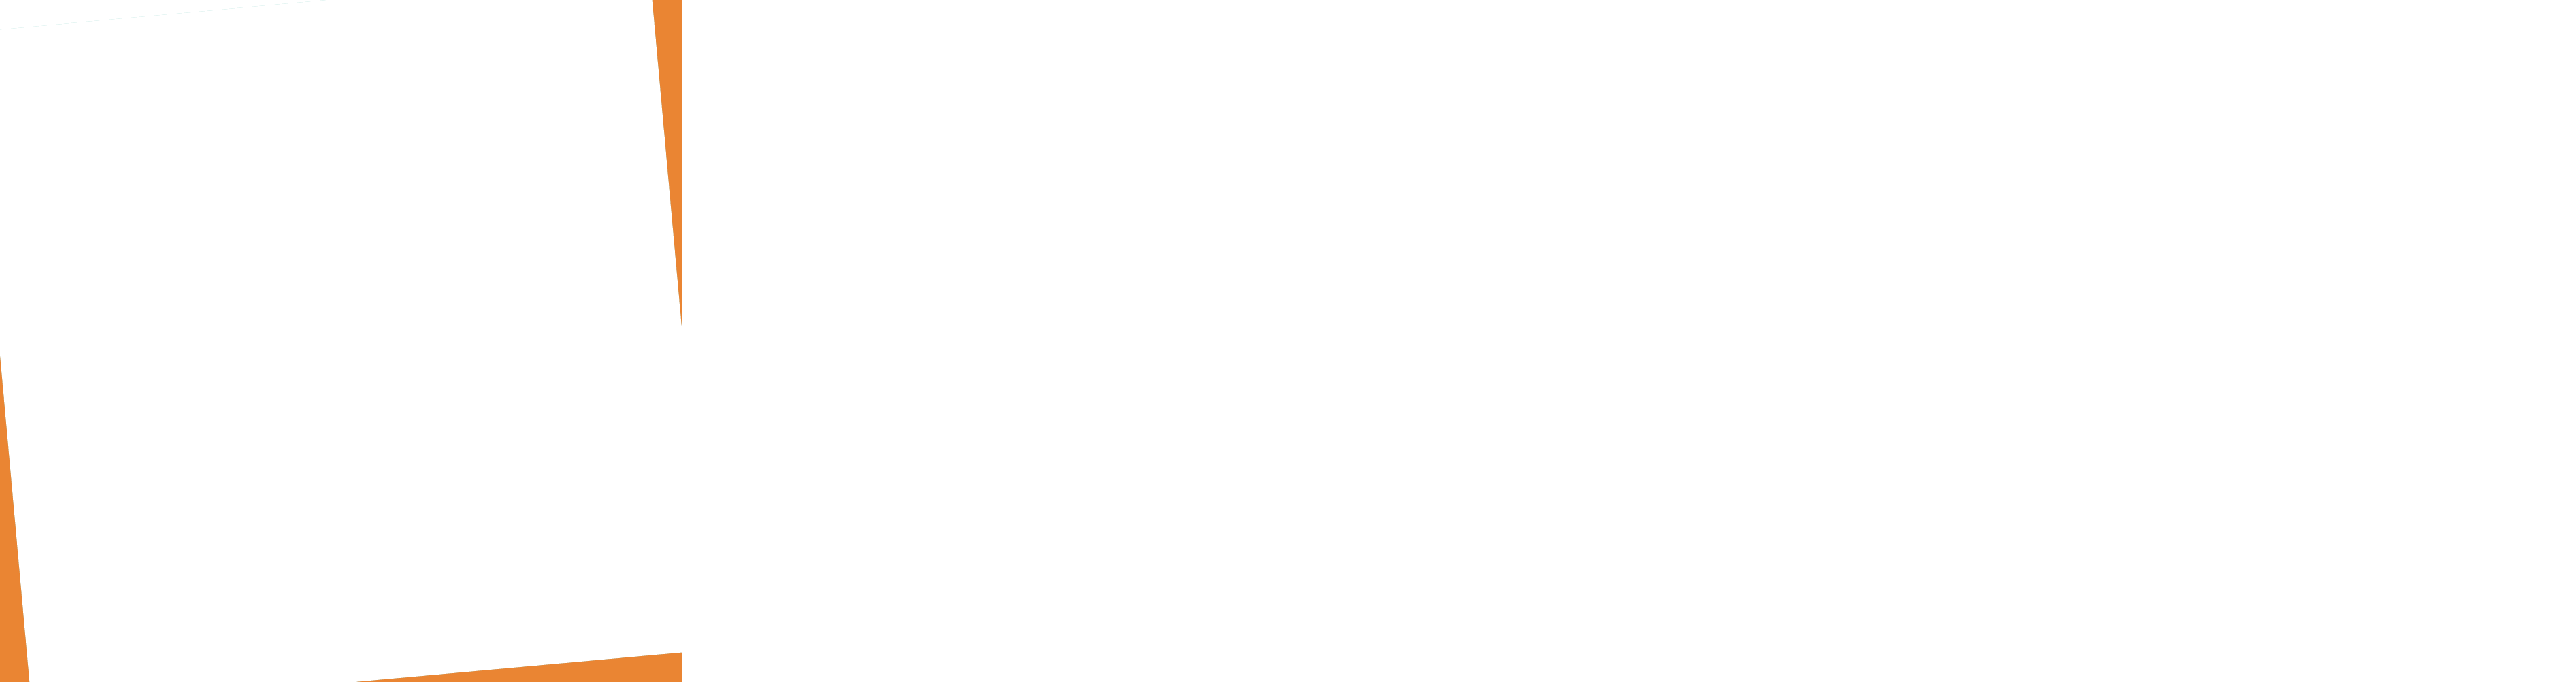 jimsprojects